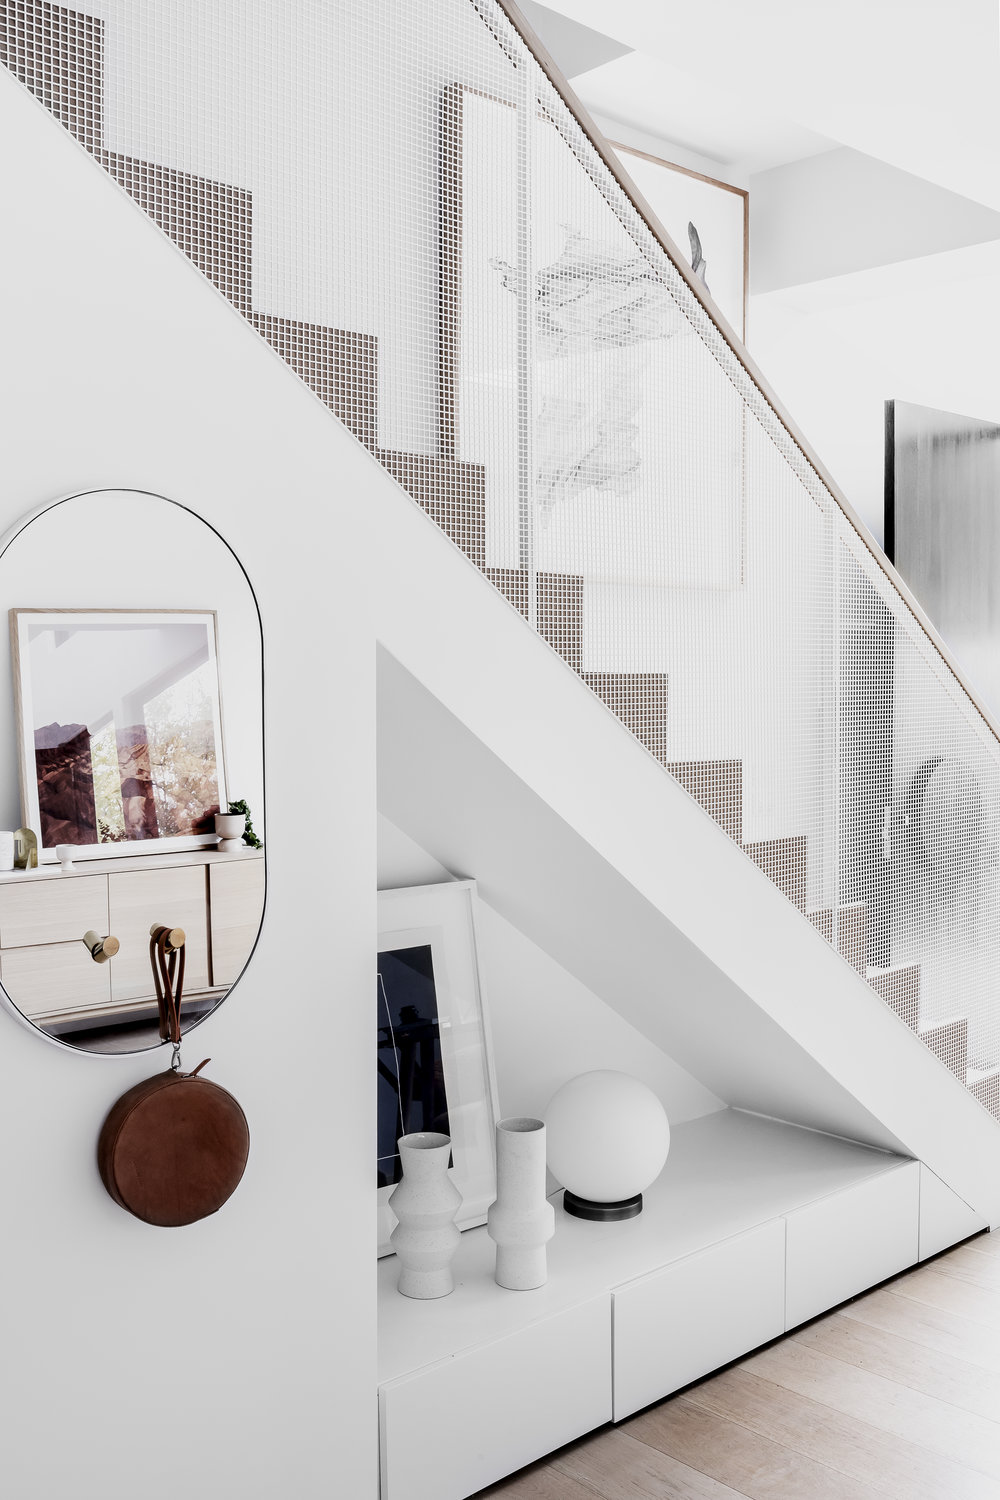 The perforated staircase detail - letting in light and connecting the spaces. Photo -  Maegan Brown .